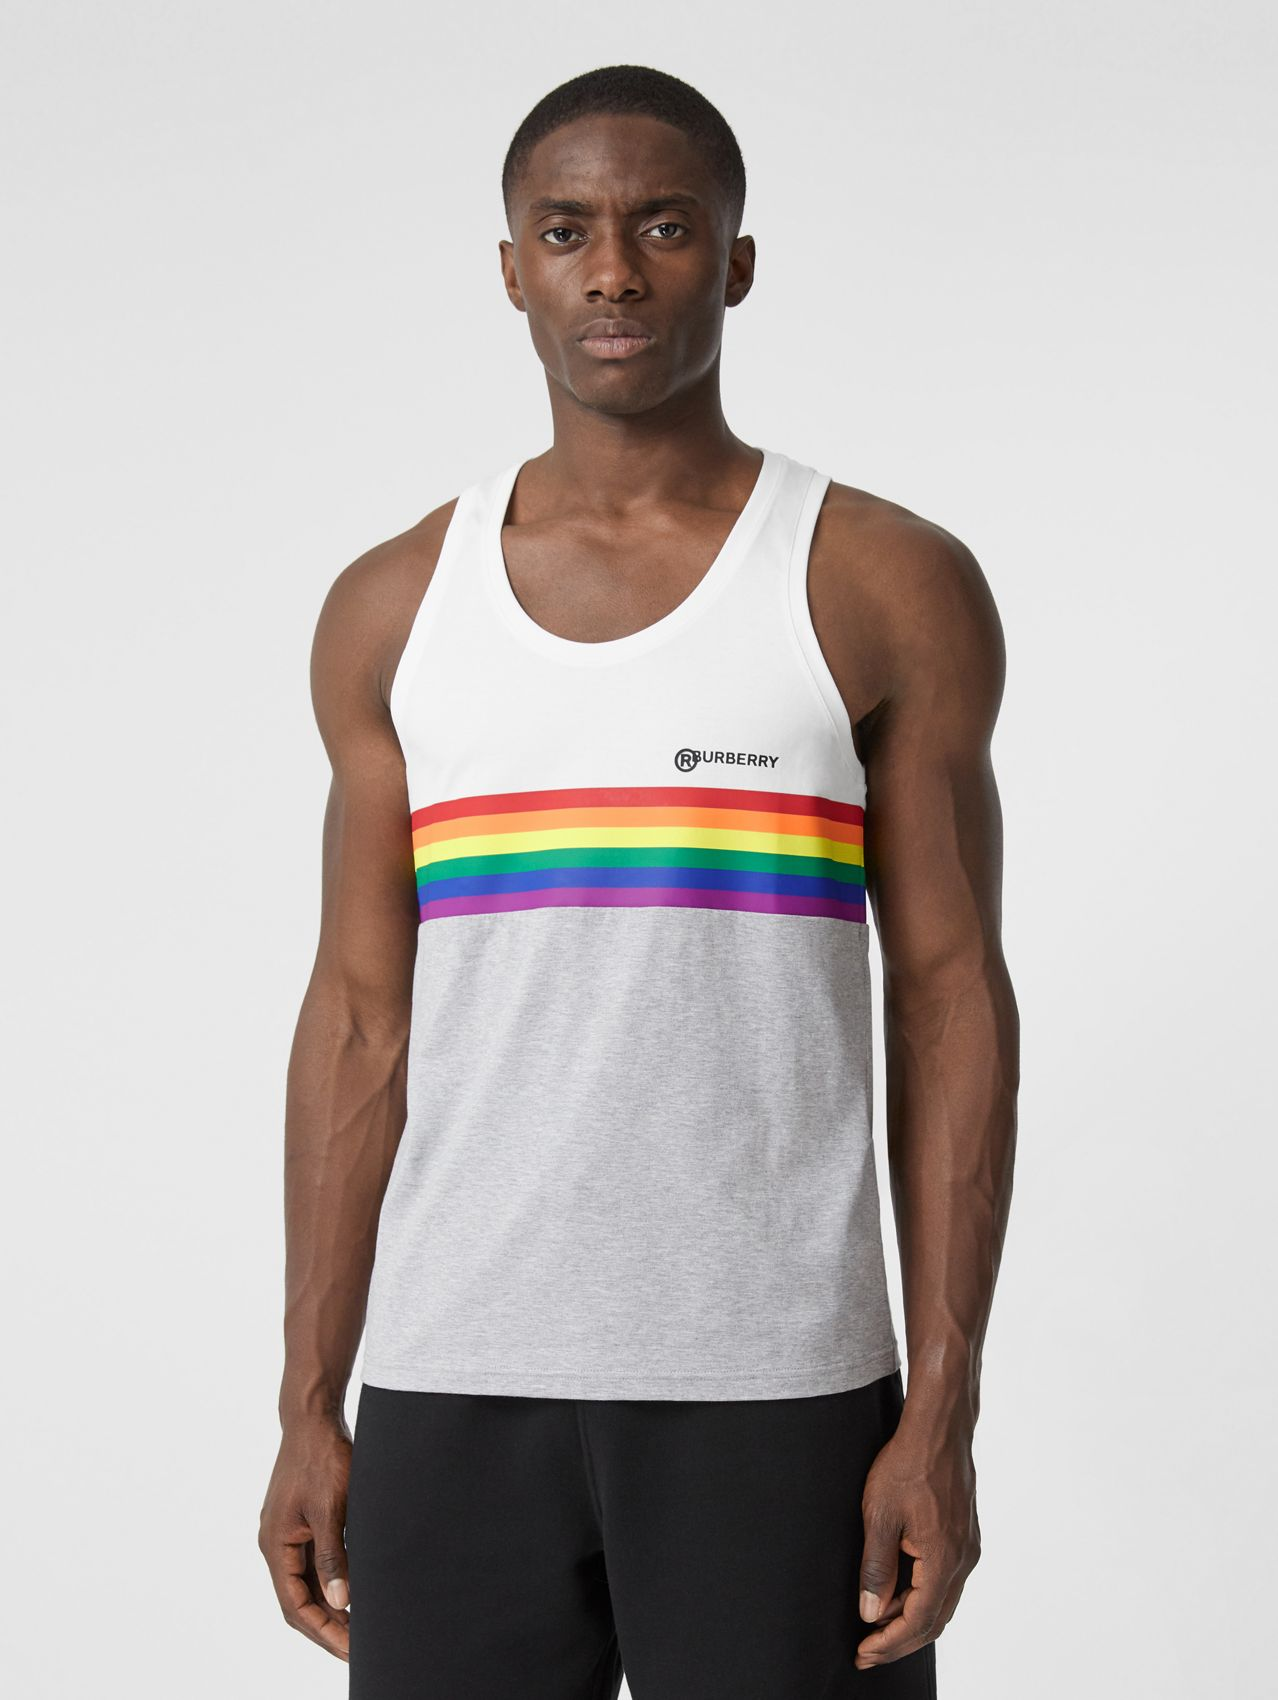 Rainbow Stripe Print Cotton Vest – Unisex (White)